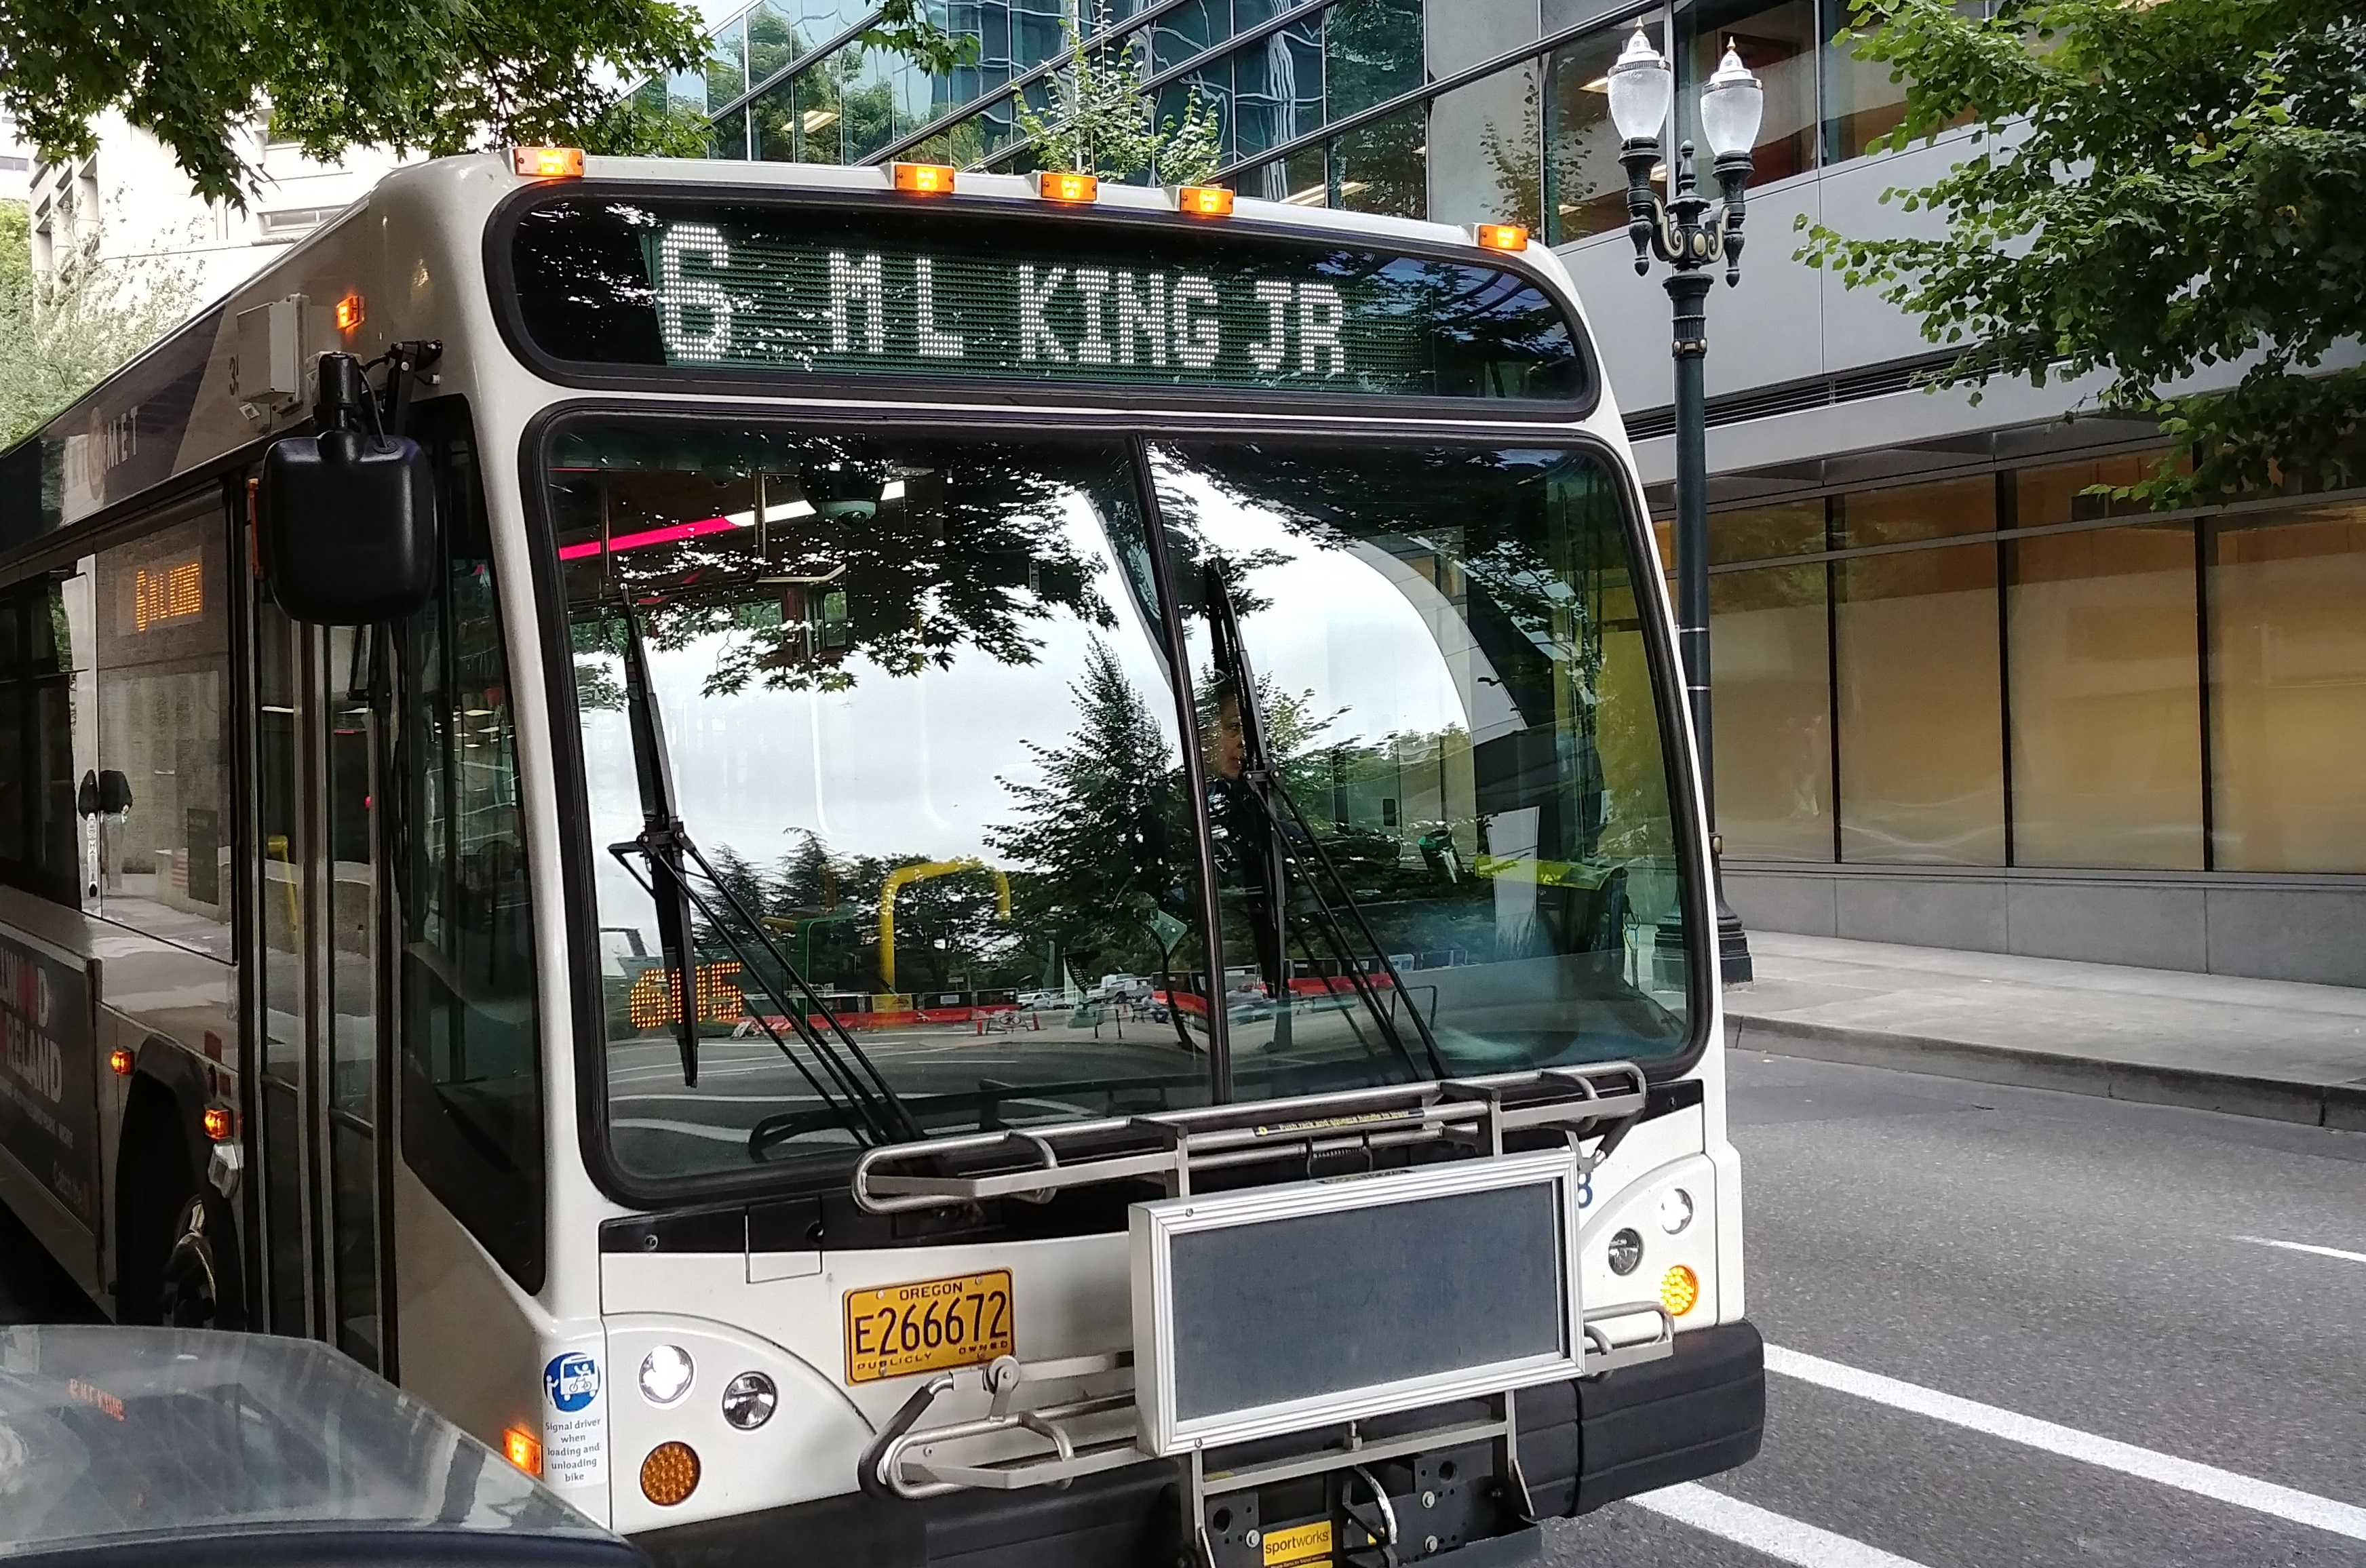 trimet expands popular frequent service bus line, adds service on